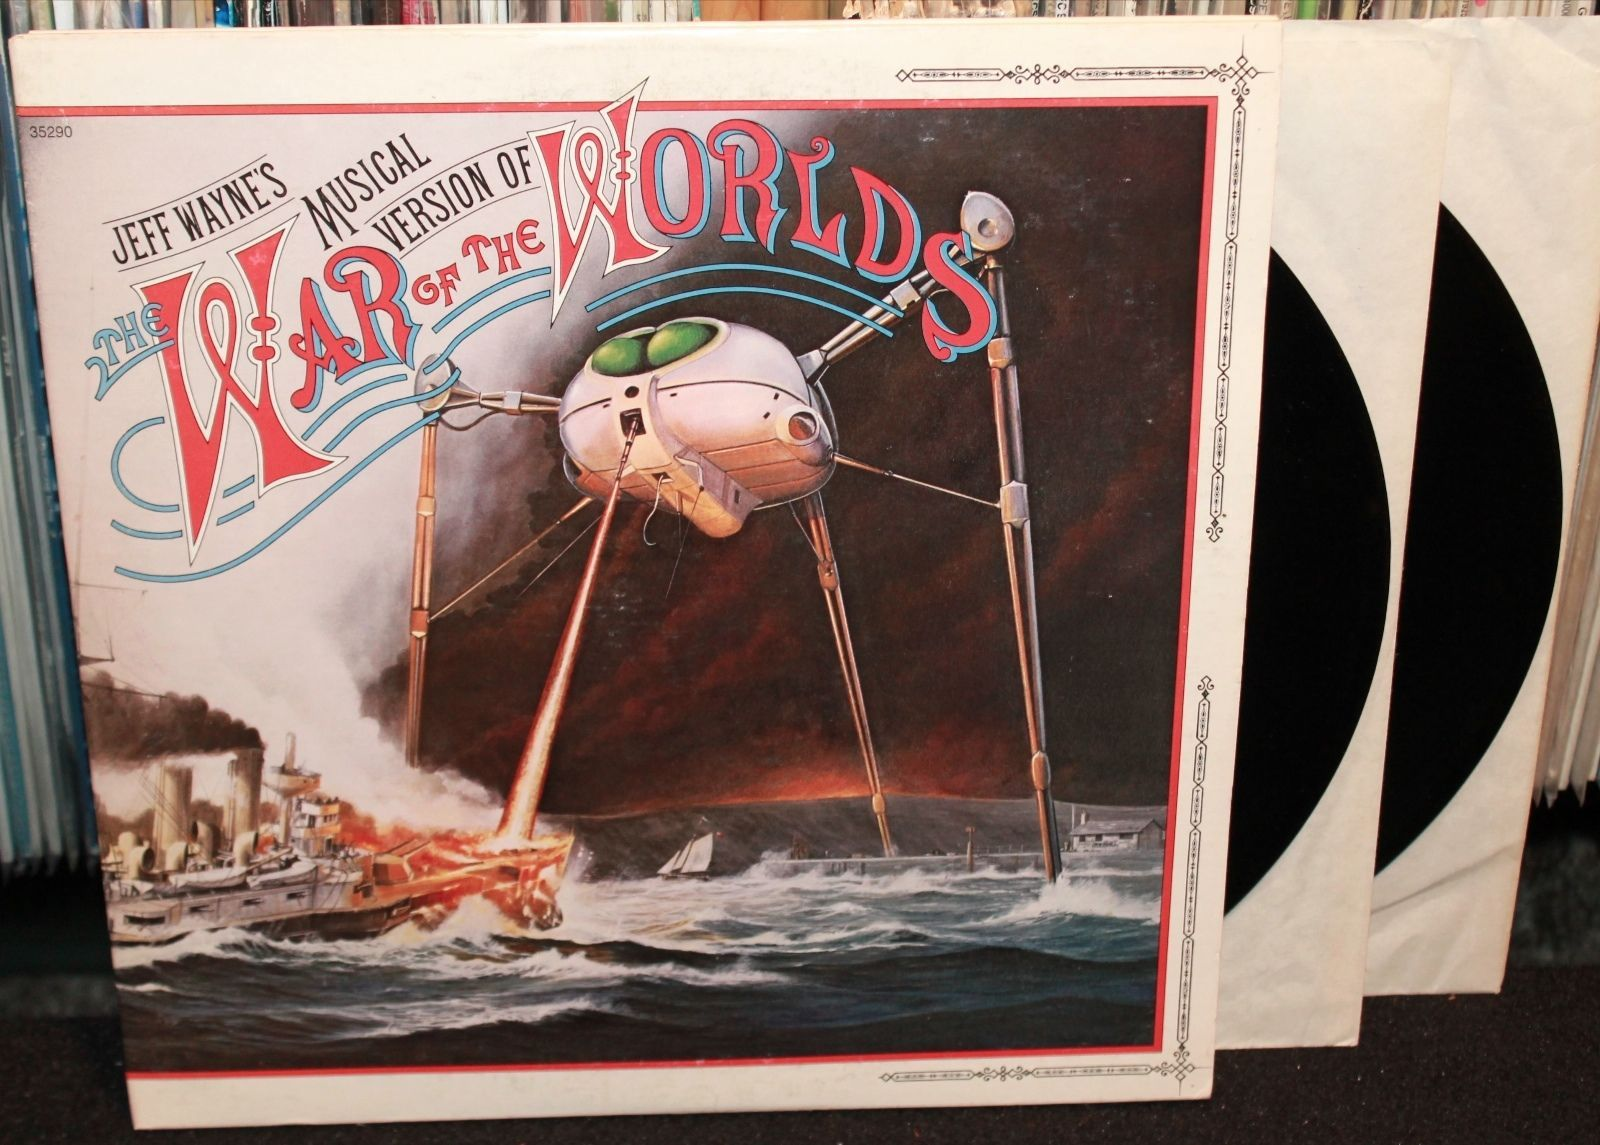 Jeff Wayne S Musical Version Of War Of The Worlds Original Double Lp Columbia 1978 Gatefold With Art Book 13 Vinyl Records War Of The Worlds Vinyl